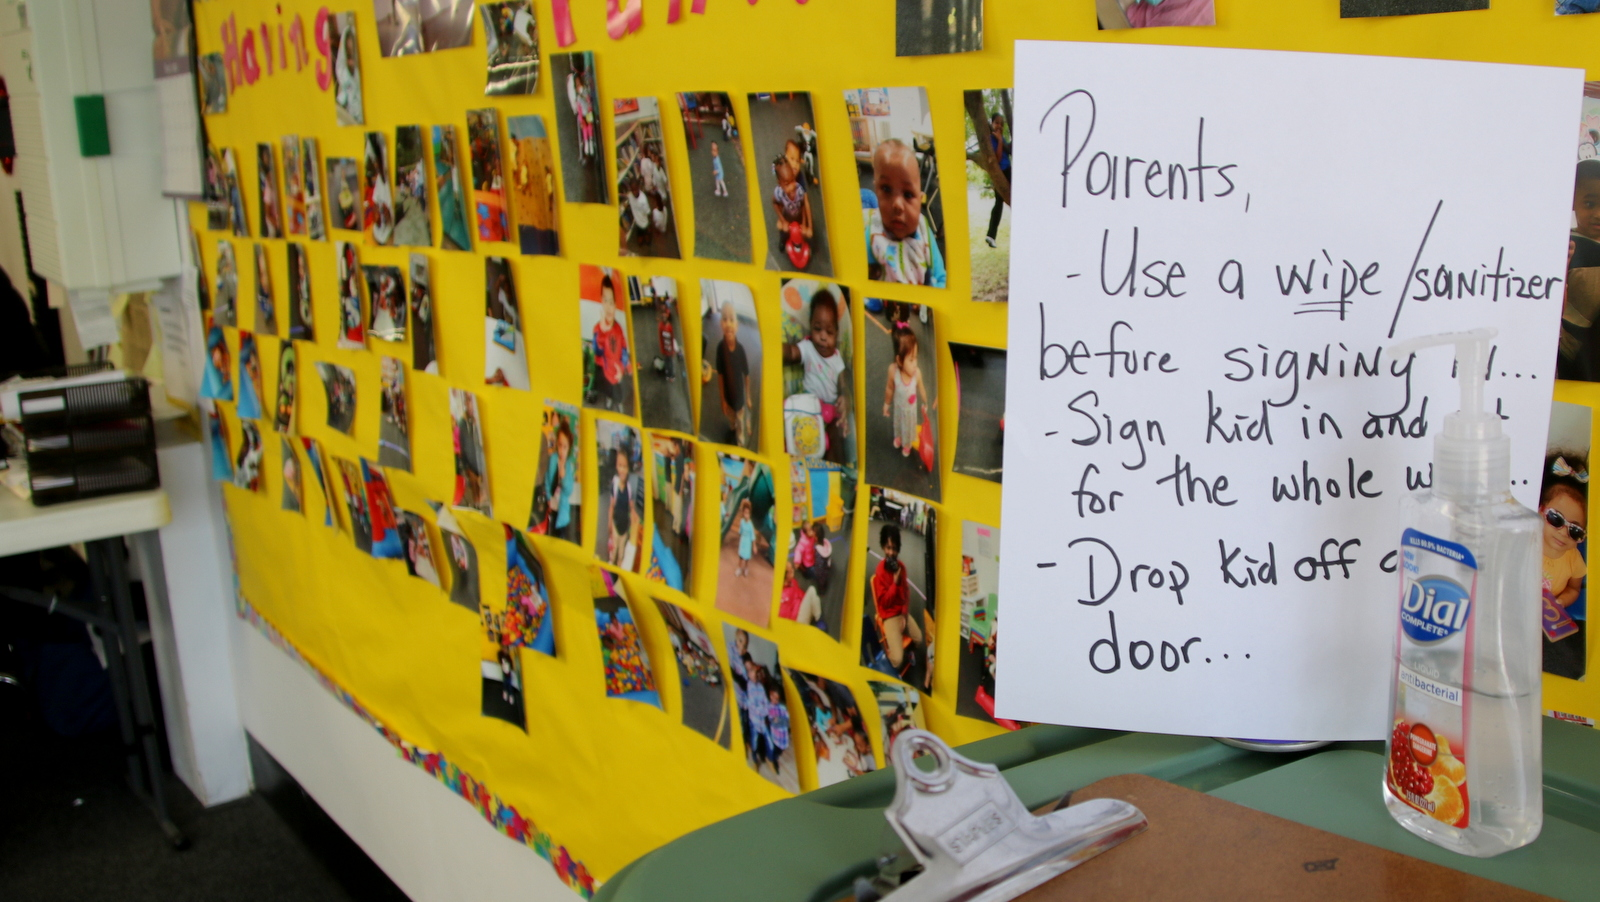 Warnings for parents at B. Angels Christian Early Learning Center. (Fern Shen)